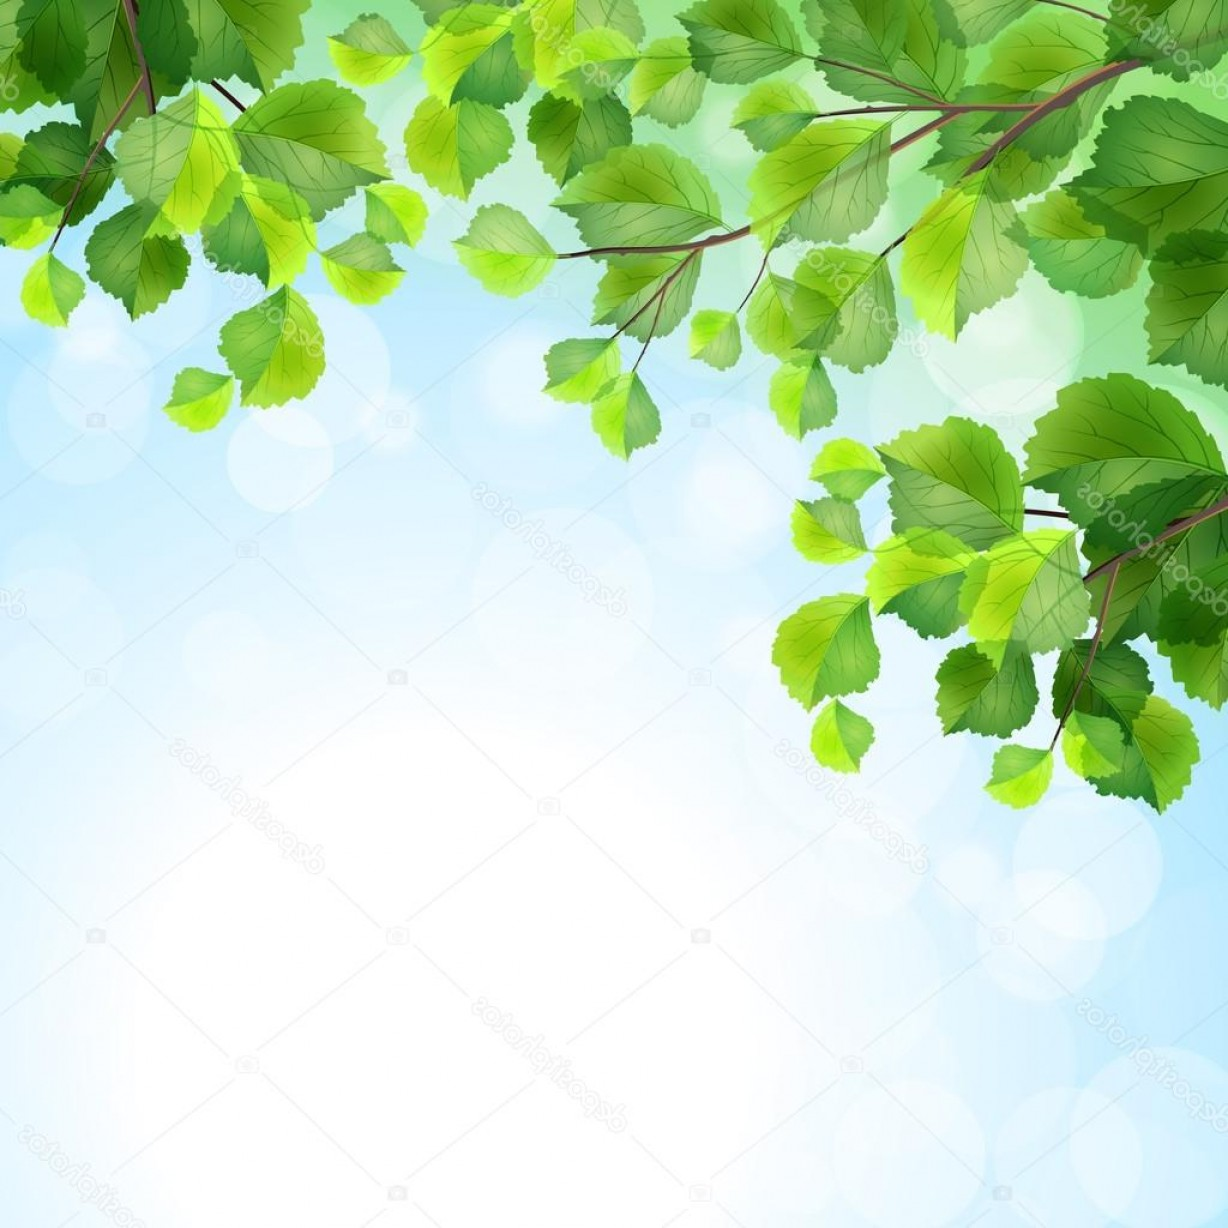 Tree Branch Vector Background: Stock Illustration Green Leaves Tree Branches Vector